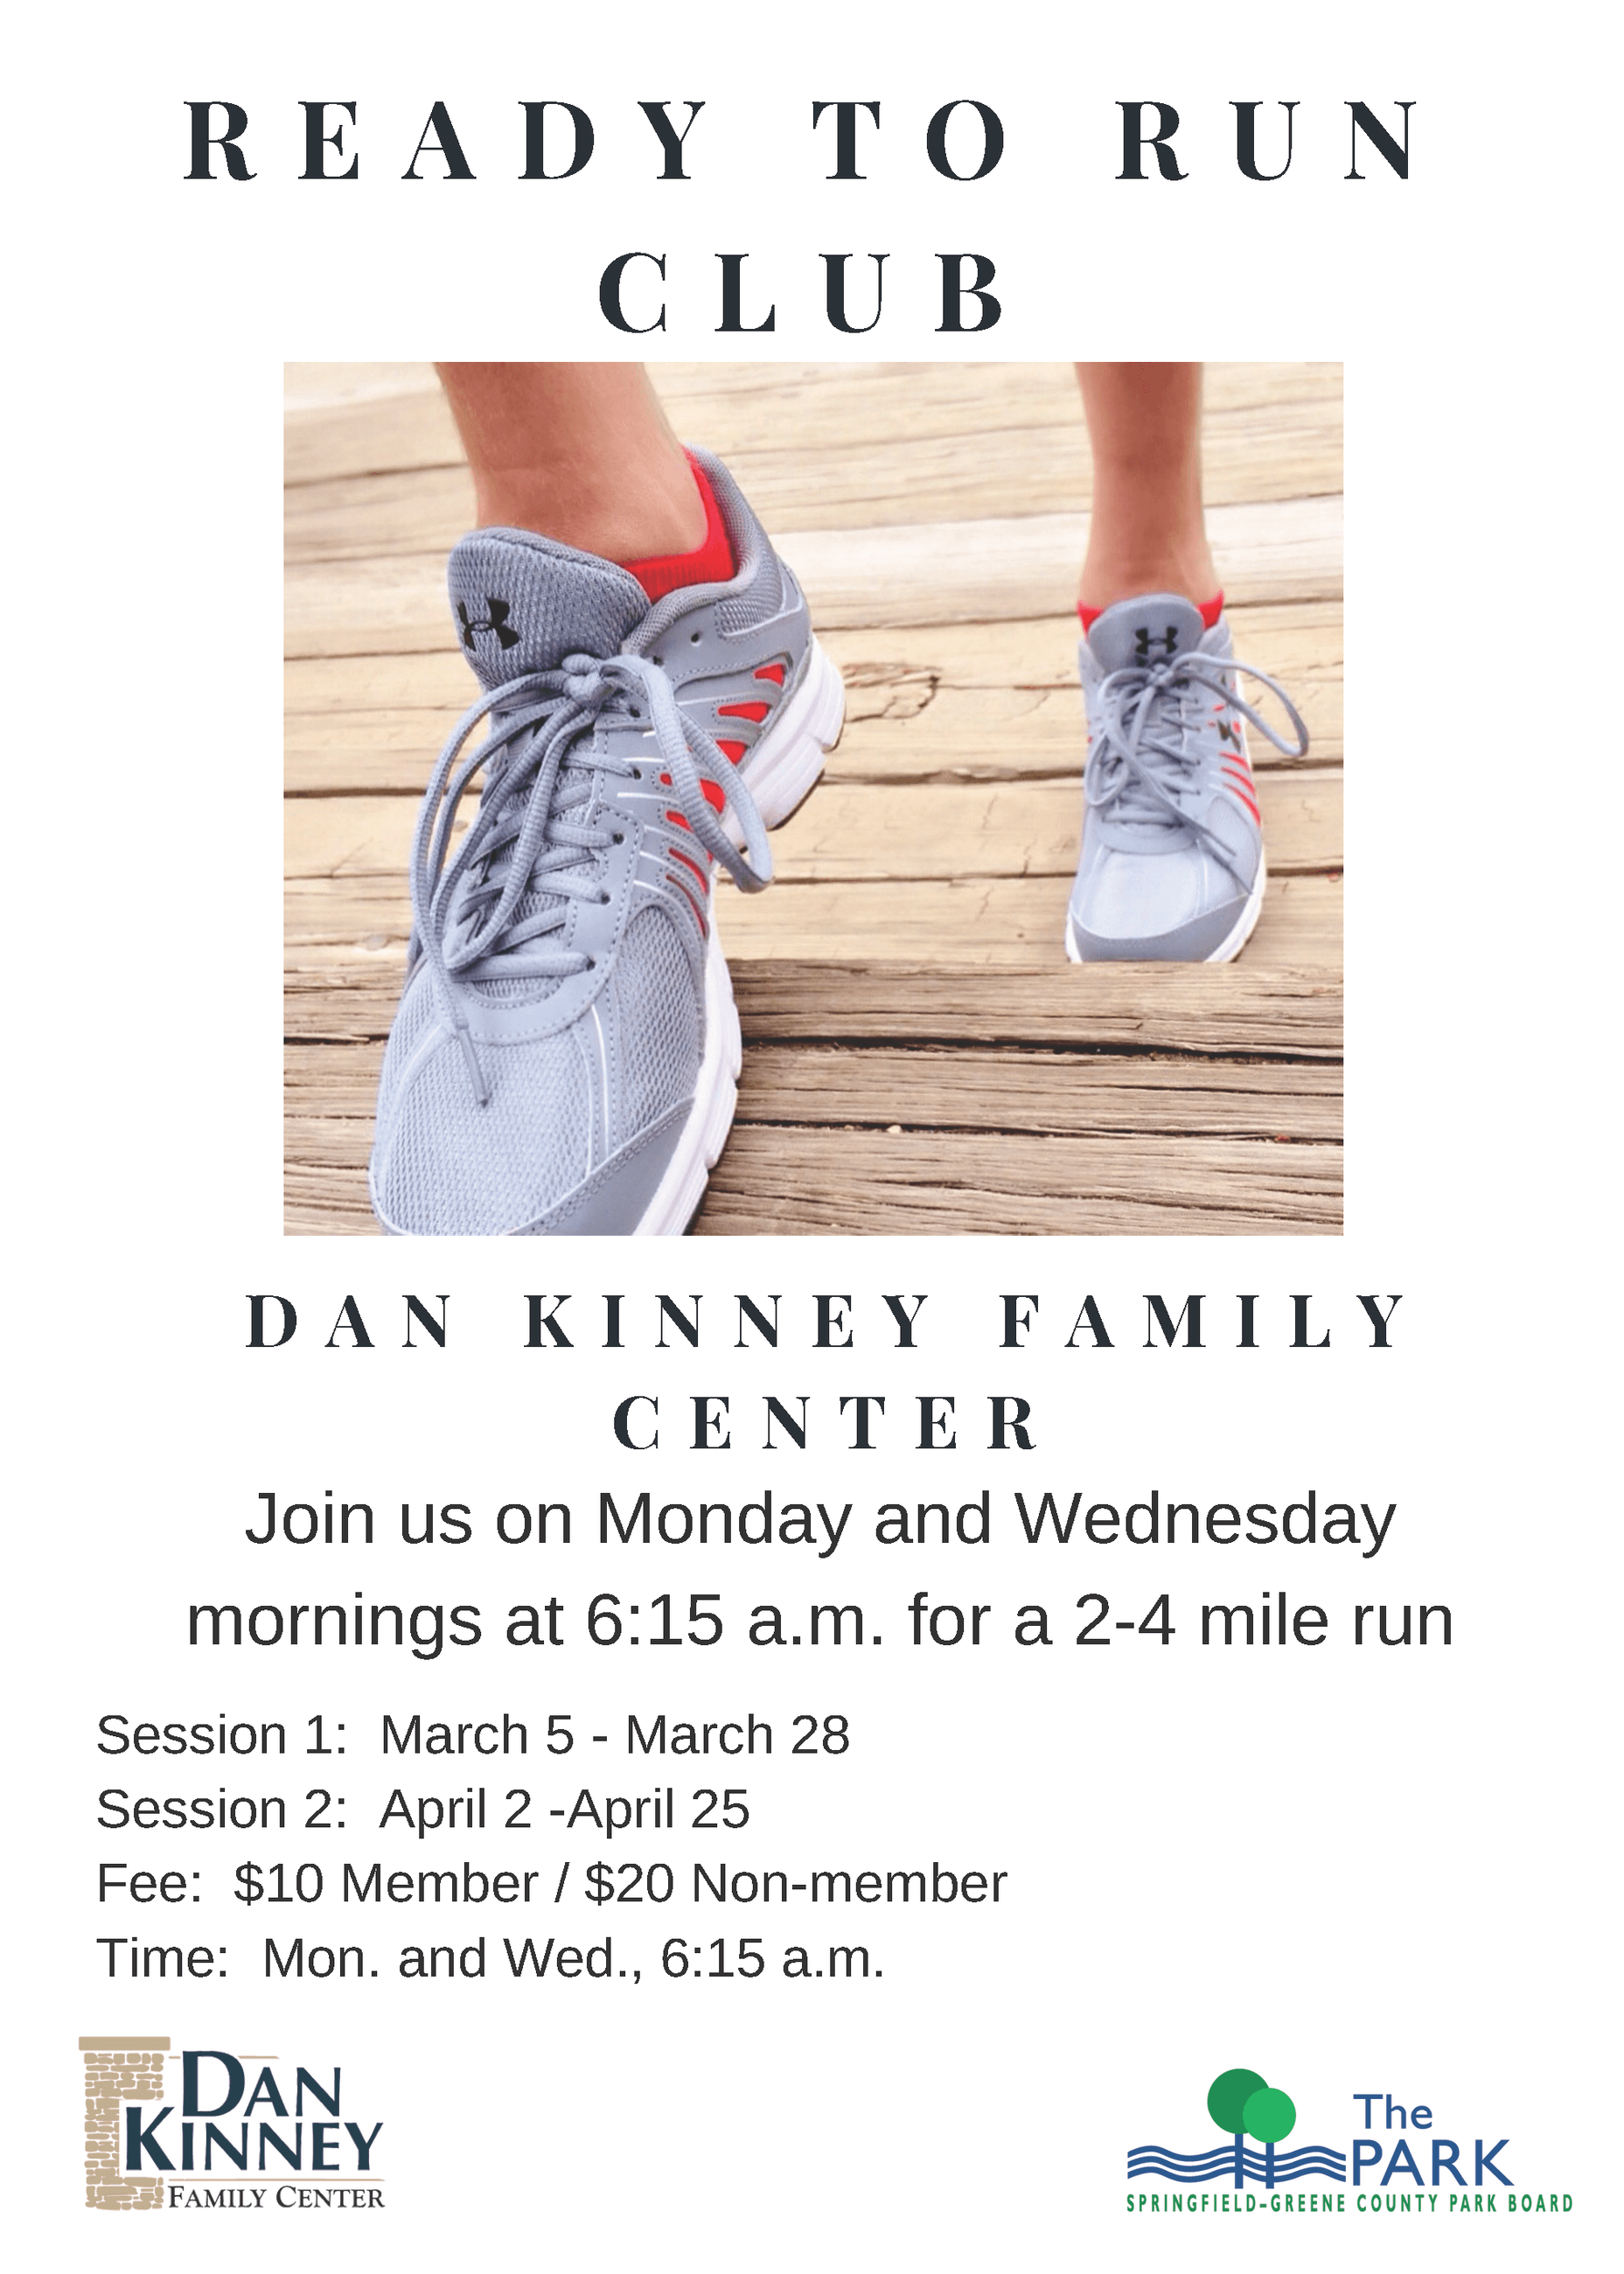 Dan kinney family center springfield greene county park board ready to run club 1betcityfo Image collections